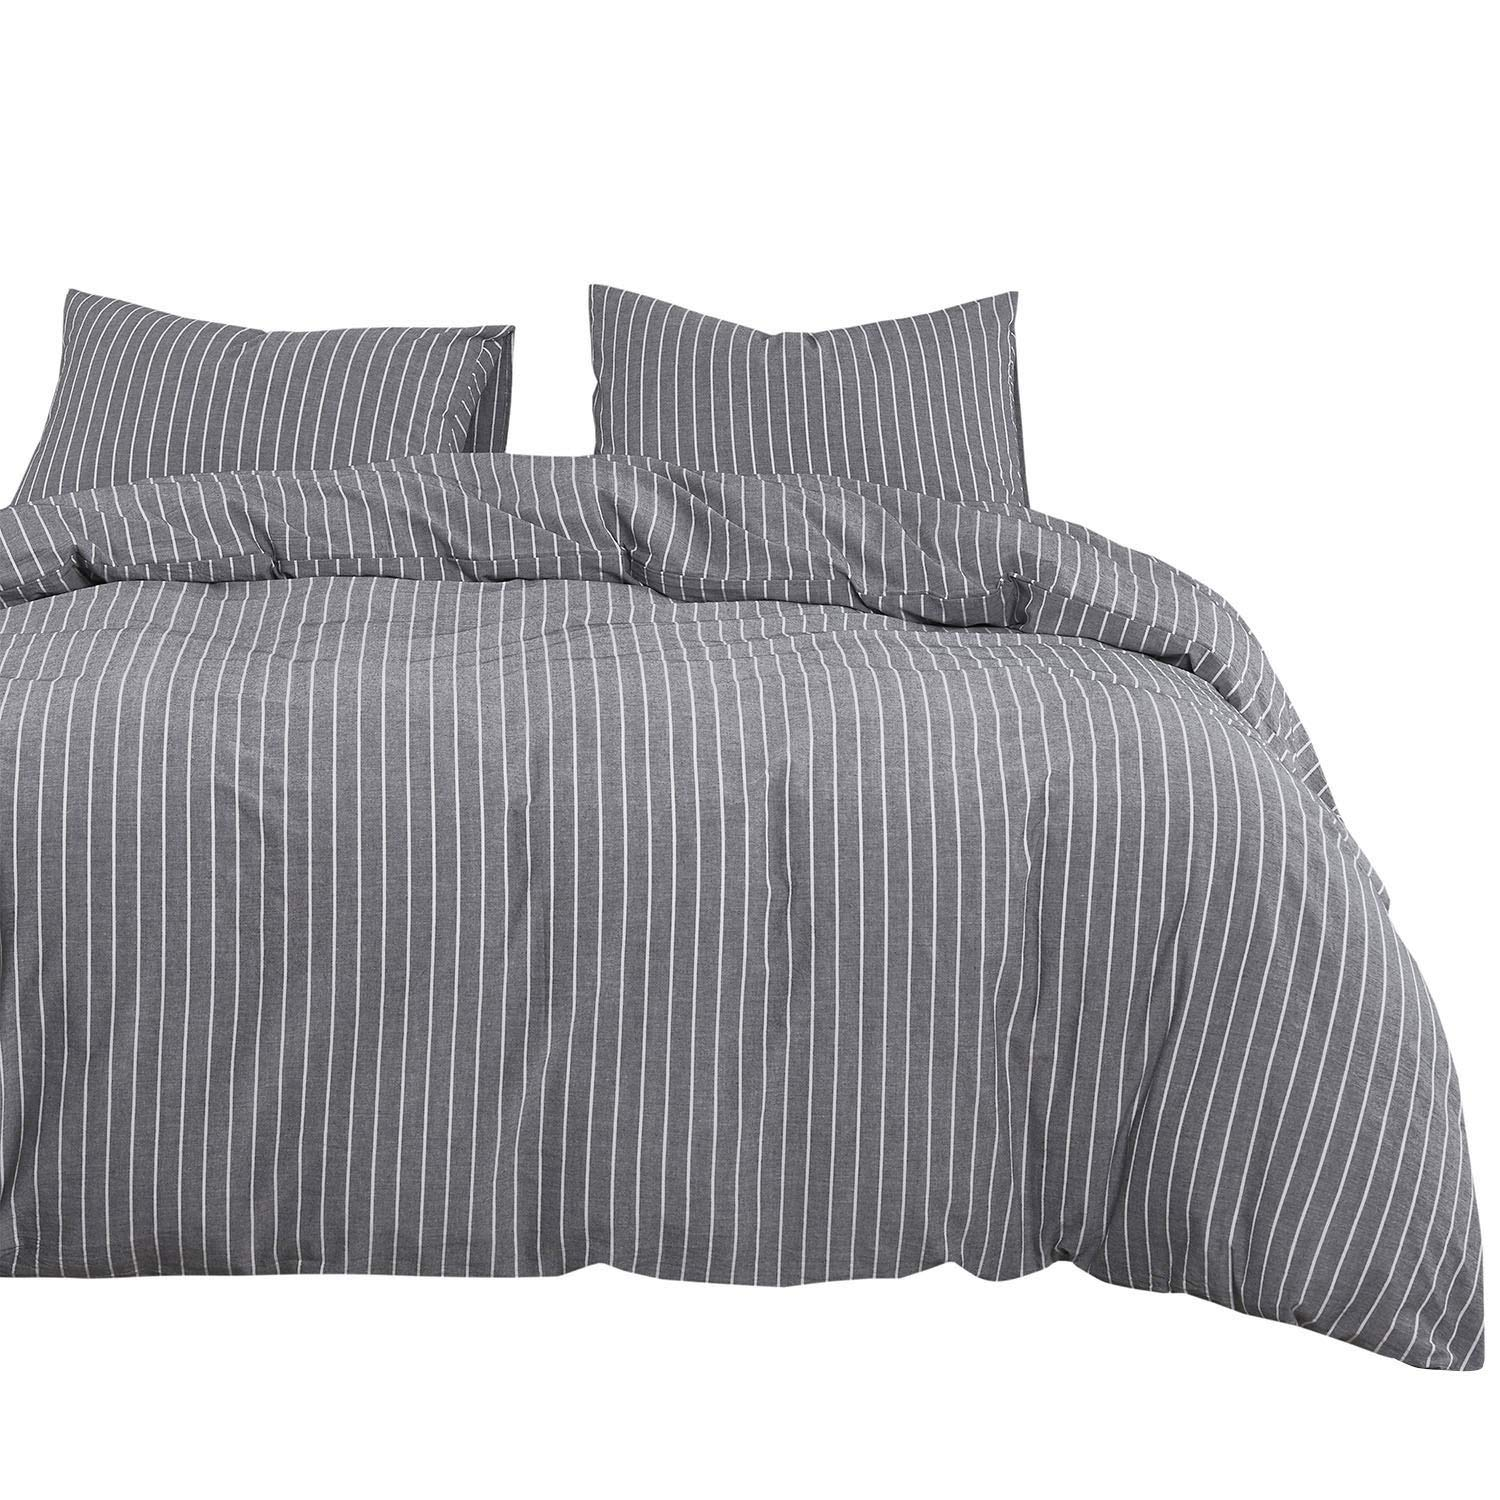 Wake In Cloud - Gray Striped Duvet Cover Set, 100% Washed Cotton Bedding, Grey with White Vertical Ticking Stripes Pattern Printed, with Zipper Closure (3pcs, California King Size)